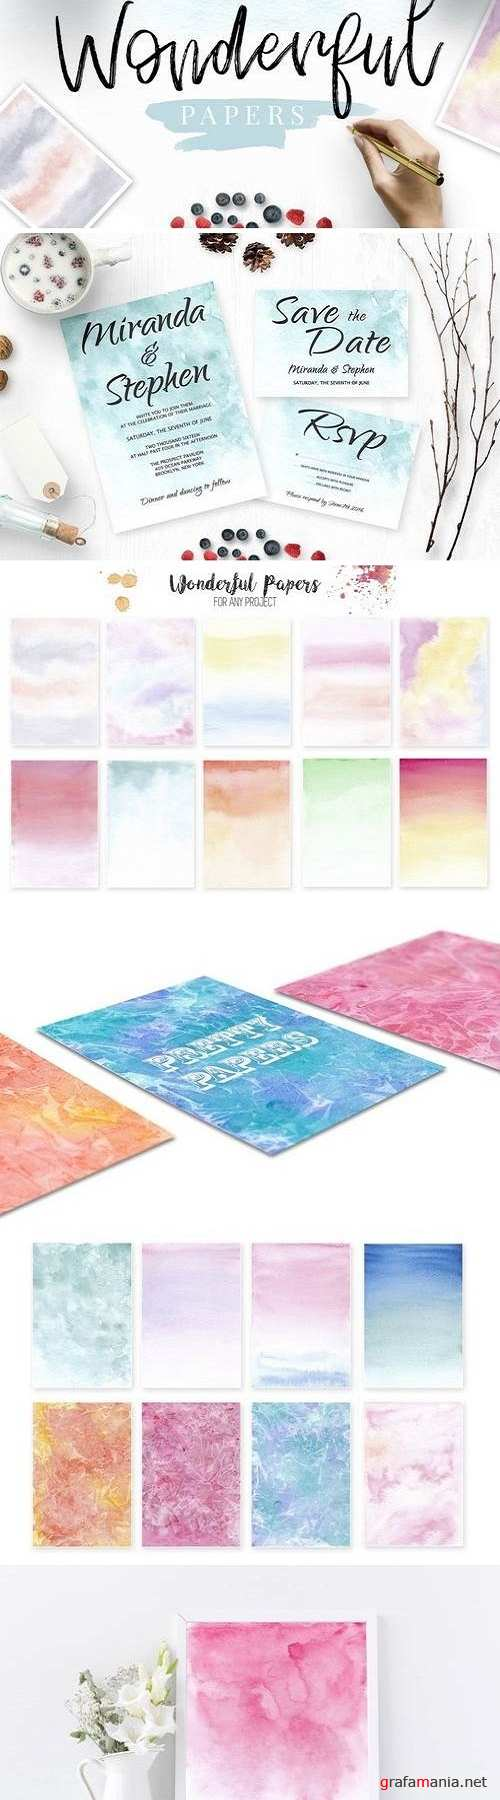 Watercolor Wonderful Papers